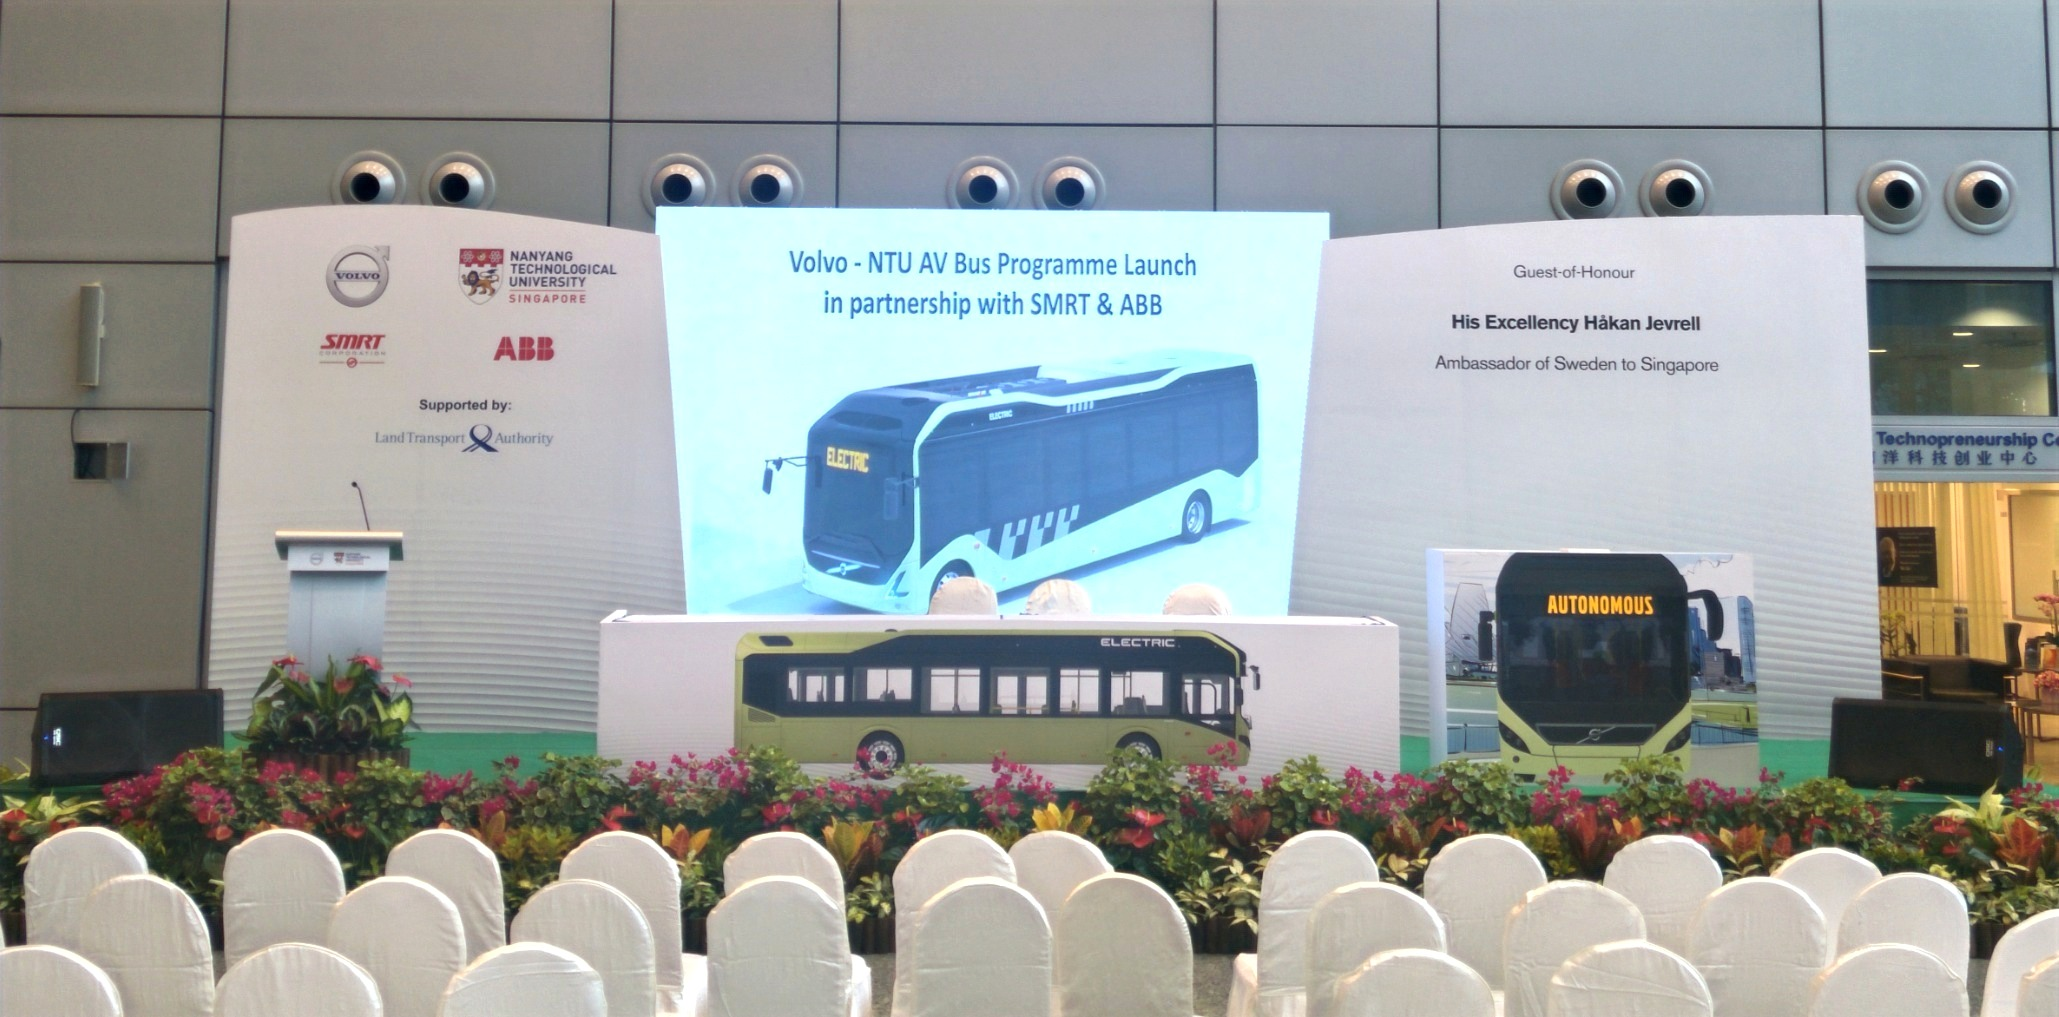 Volvo-NTU AV Bus Programme Launch 2018